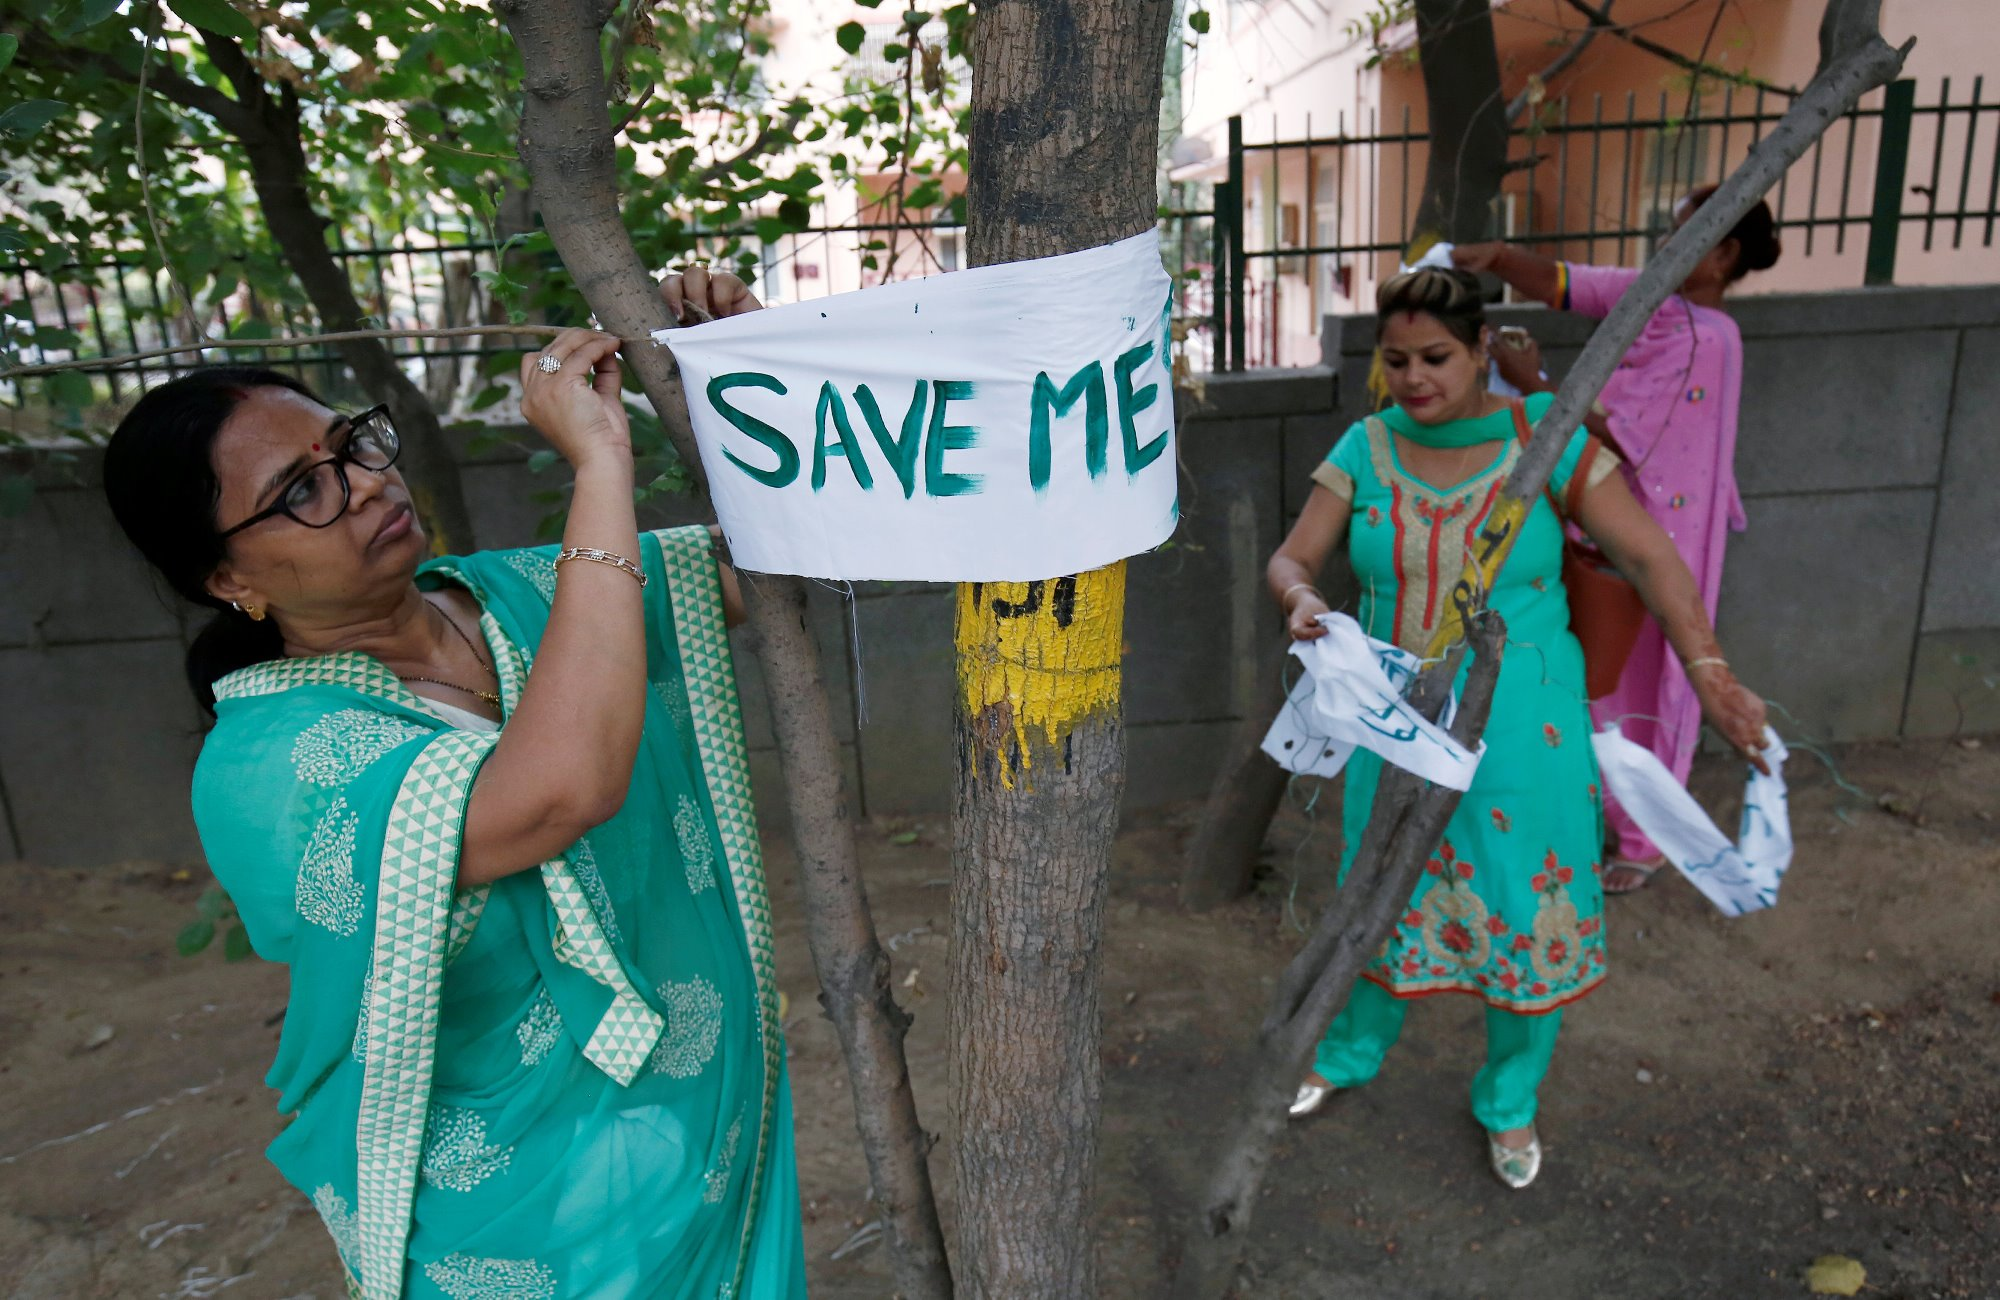 """A women tie banners on trees during """"Save The Tree Campaign"""" in New Delhi, India, June 26, 2018. REUTERS/Adnan Abidi"""